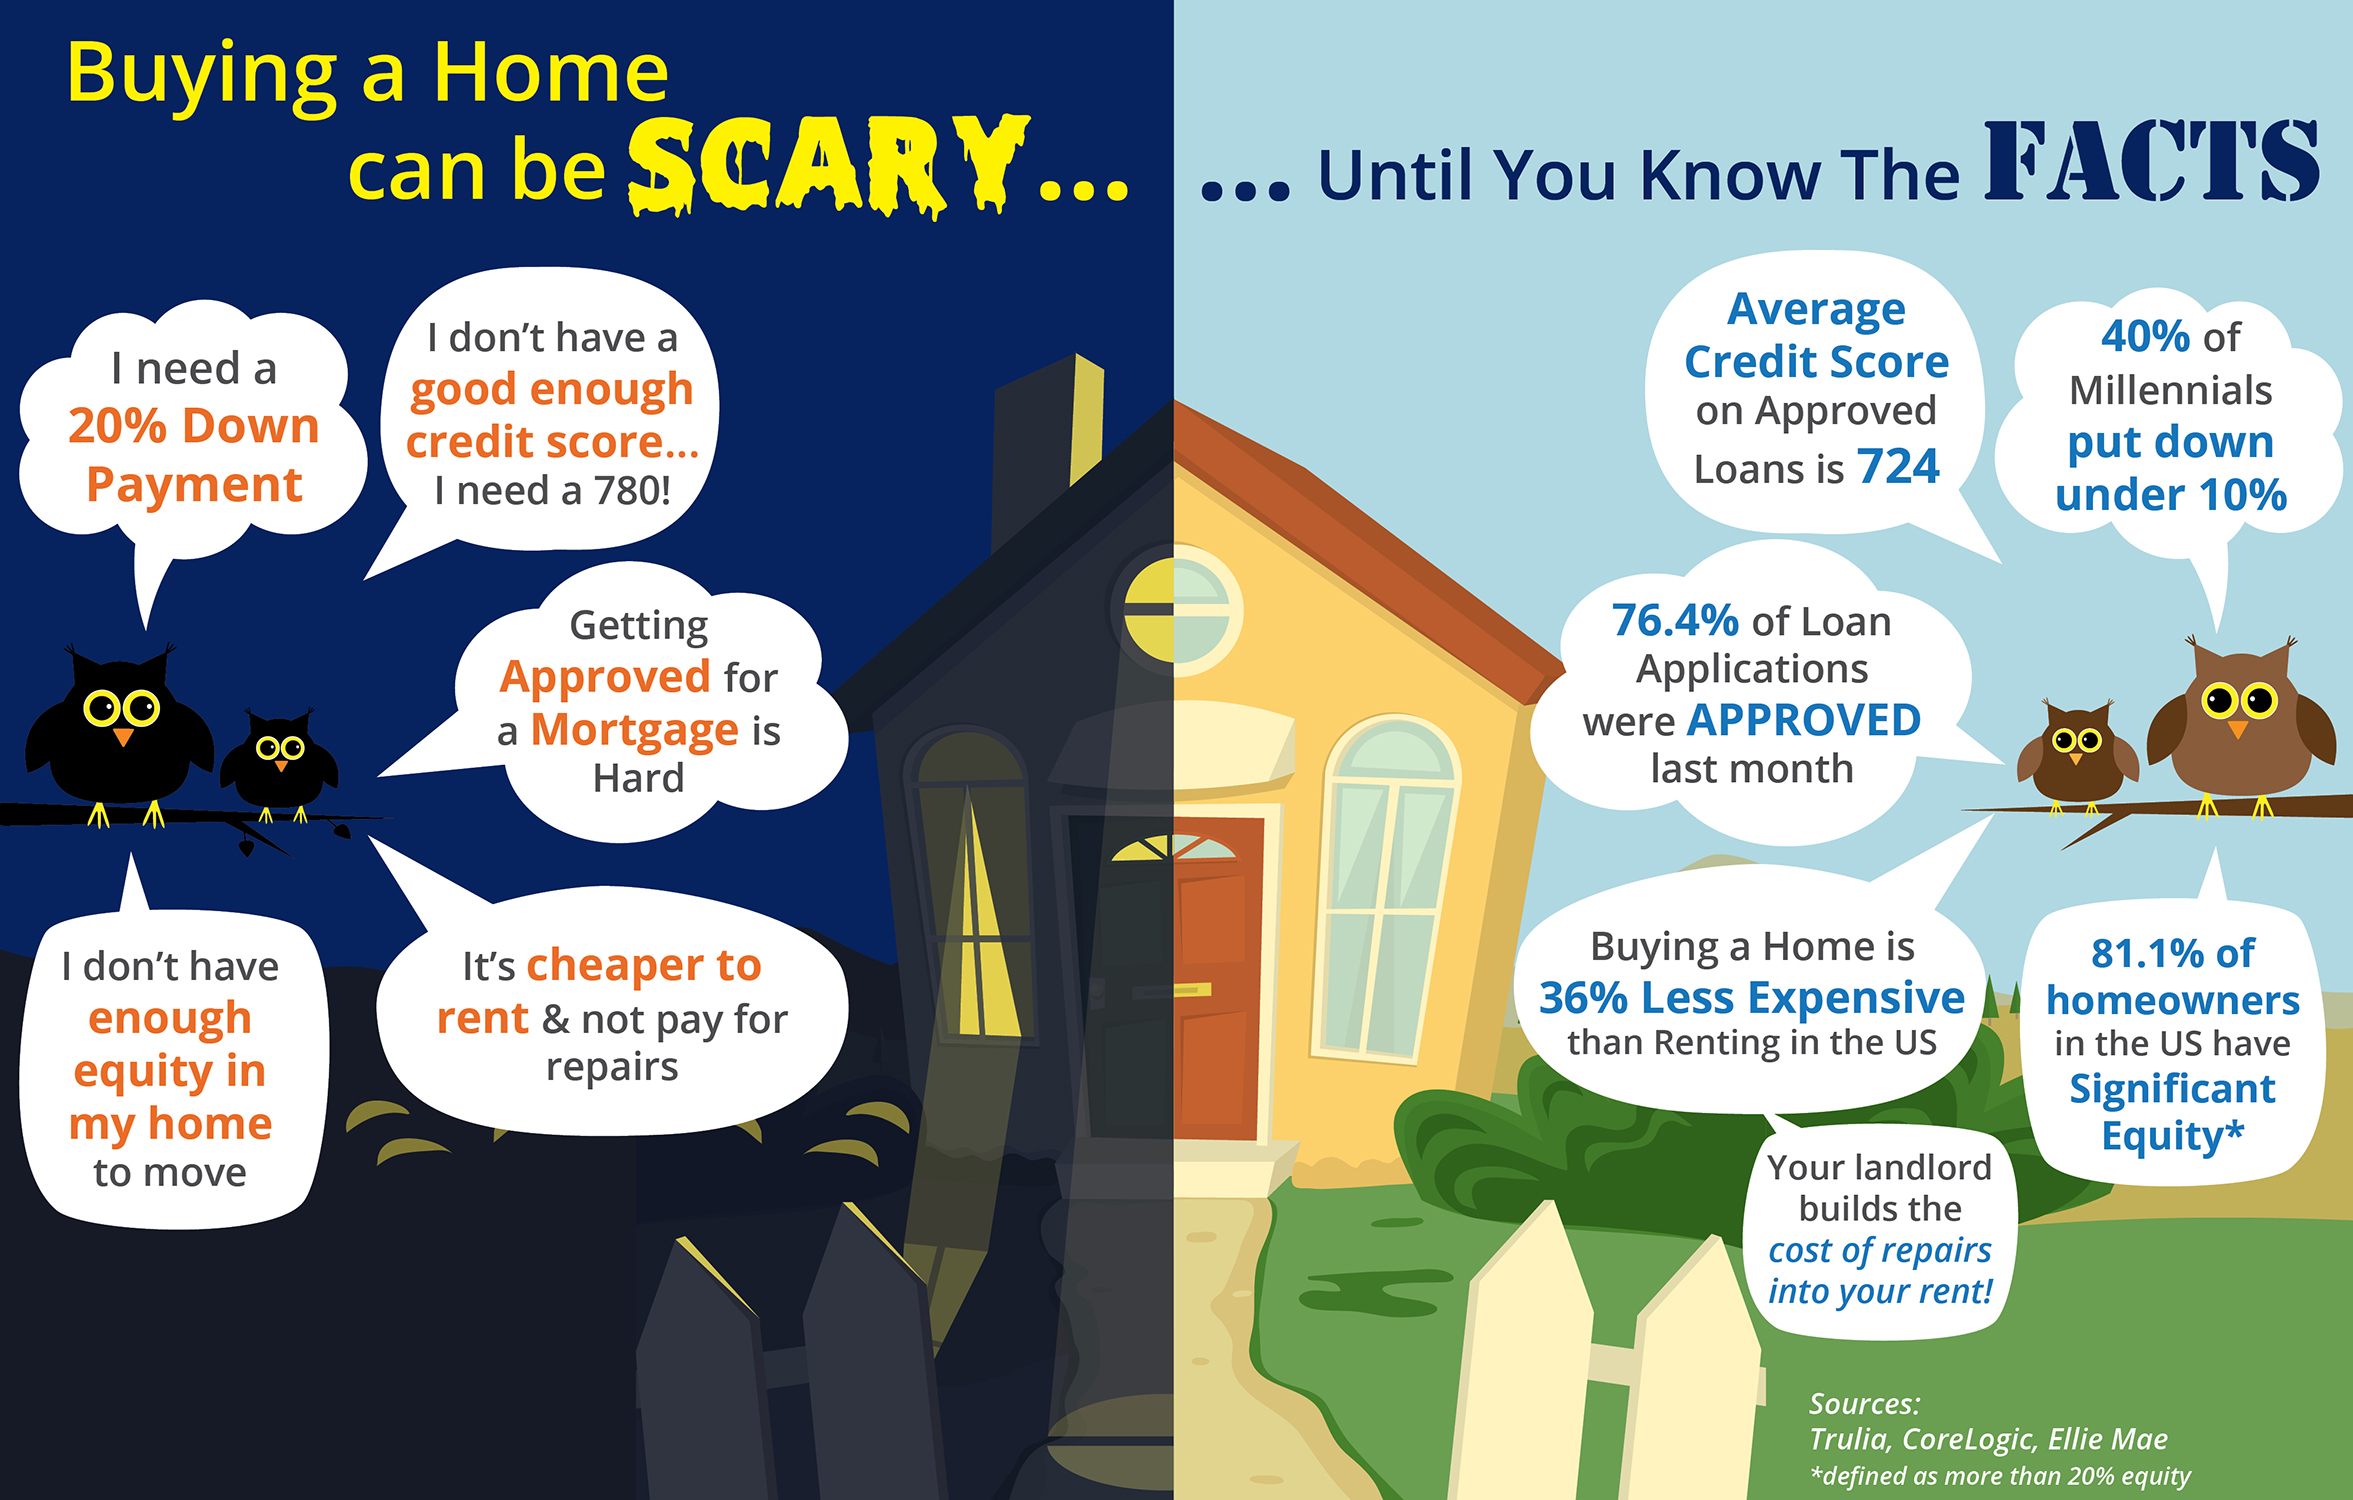 Don't Be Spooked by Buying a Home